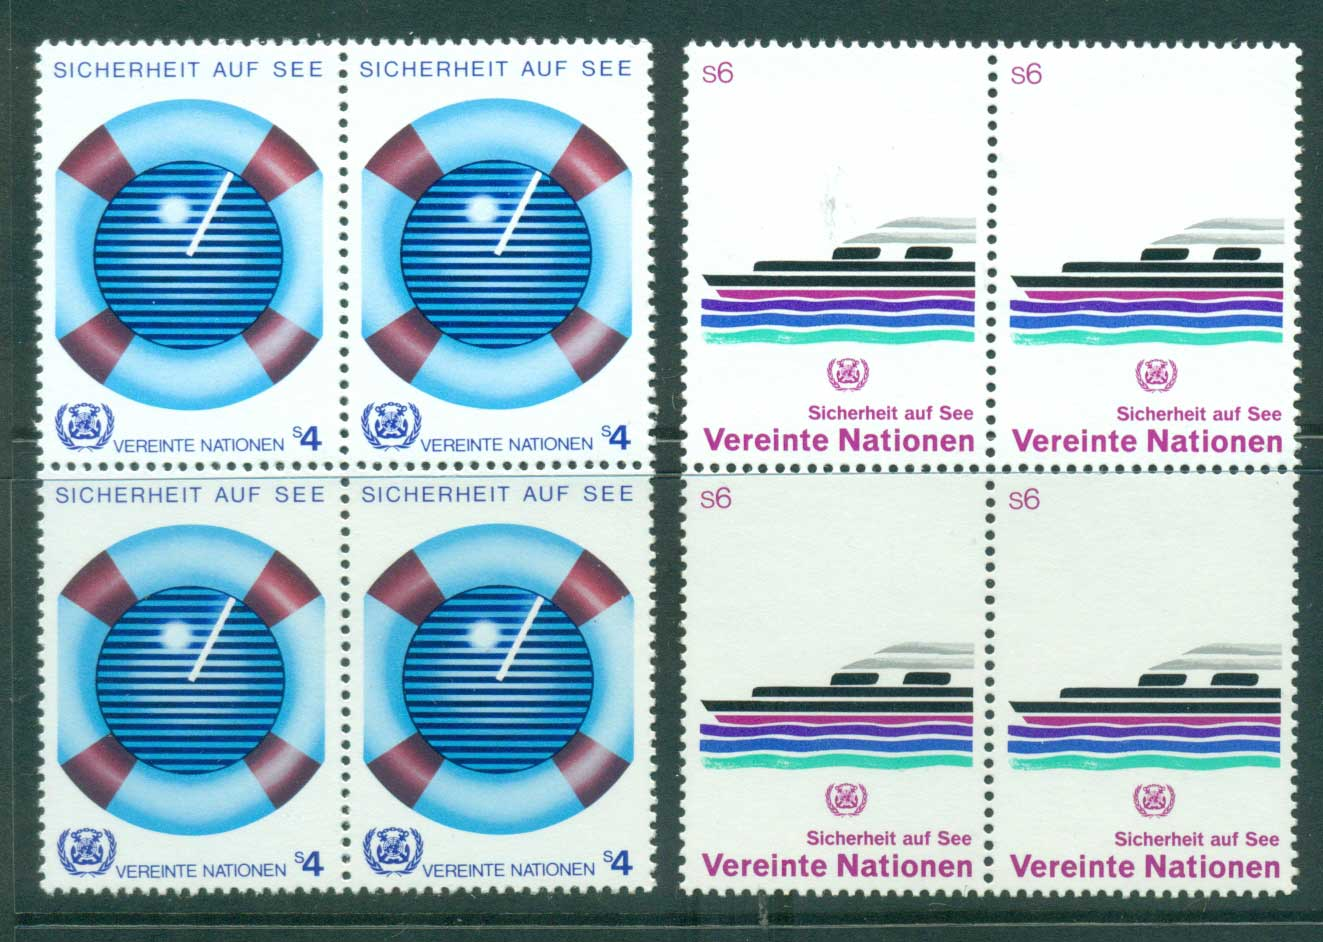 UN Vienna 1983 Safety at Sea Blk 4 MUH lot41004